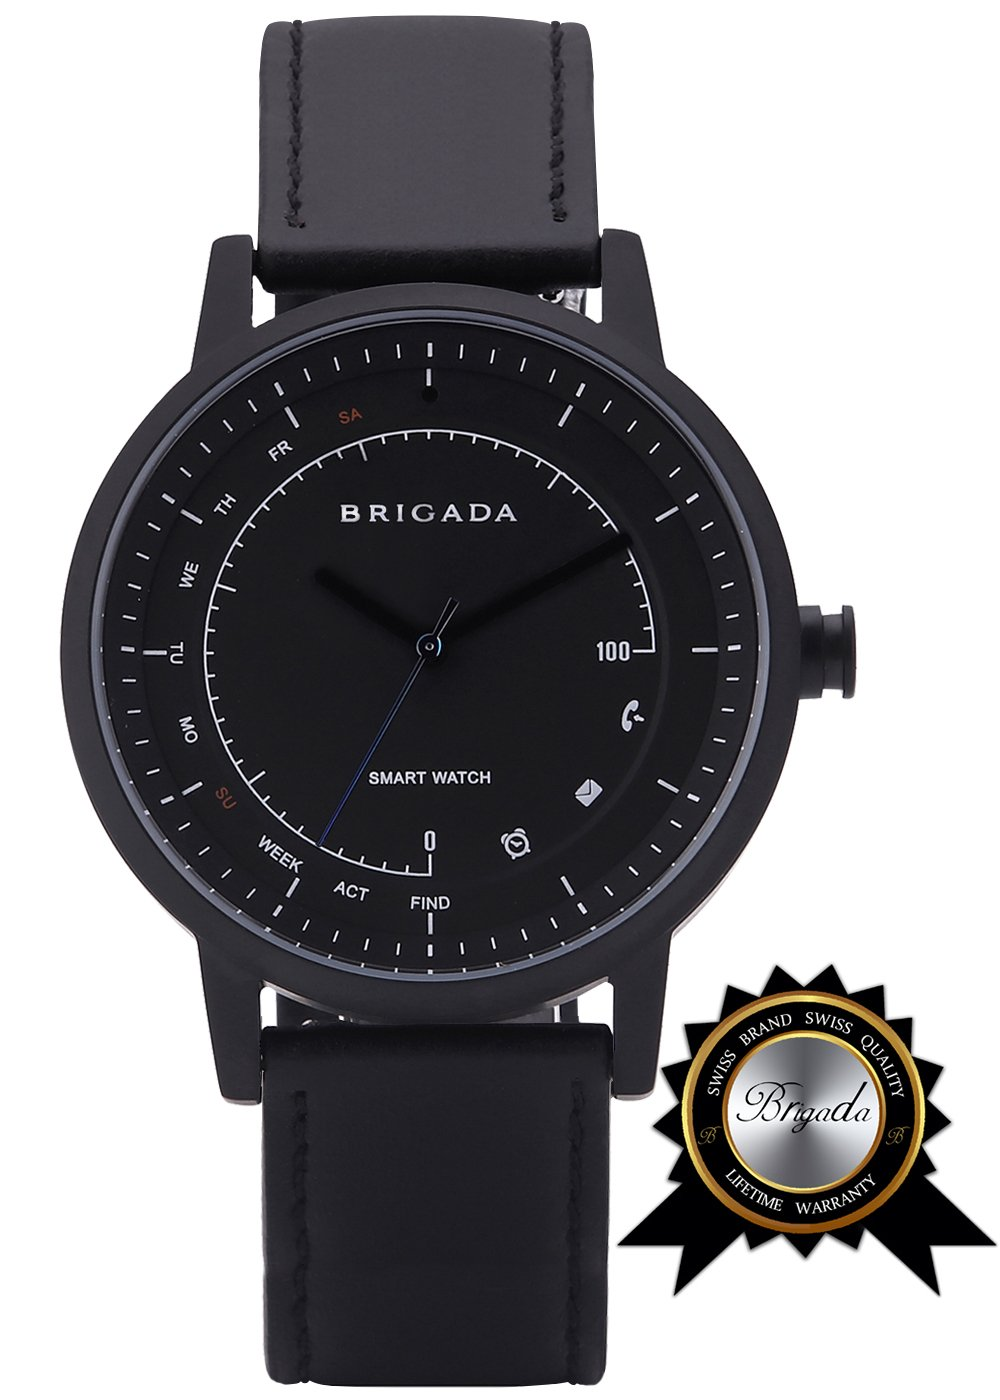 BRIGADA No-Need-Charge Smart Watch for Men, Cool Fashion Smart Watch for Android iphone, Best Innovative Smartwatch Combining Traditional Watch's Beauty with Modern Functions Like Exercise Track